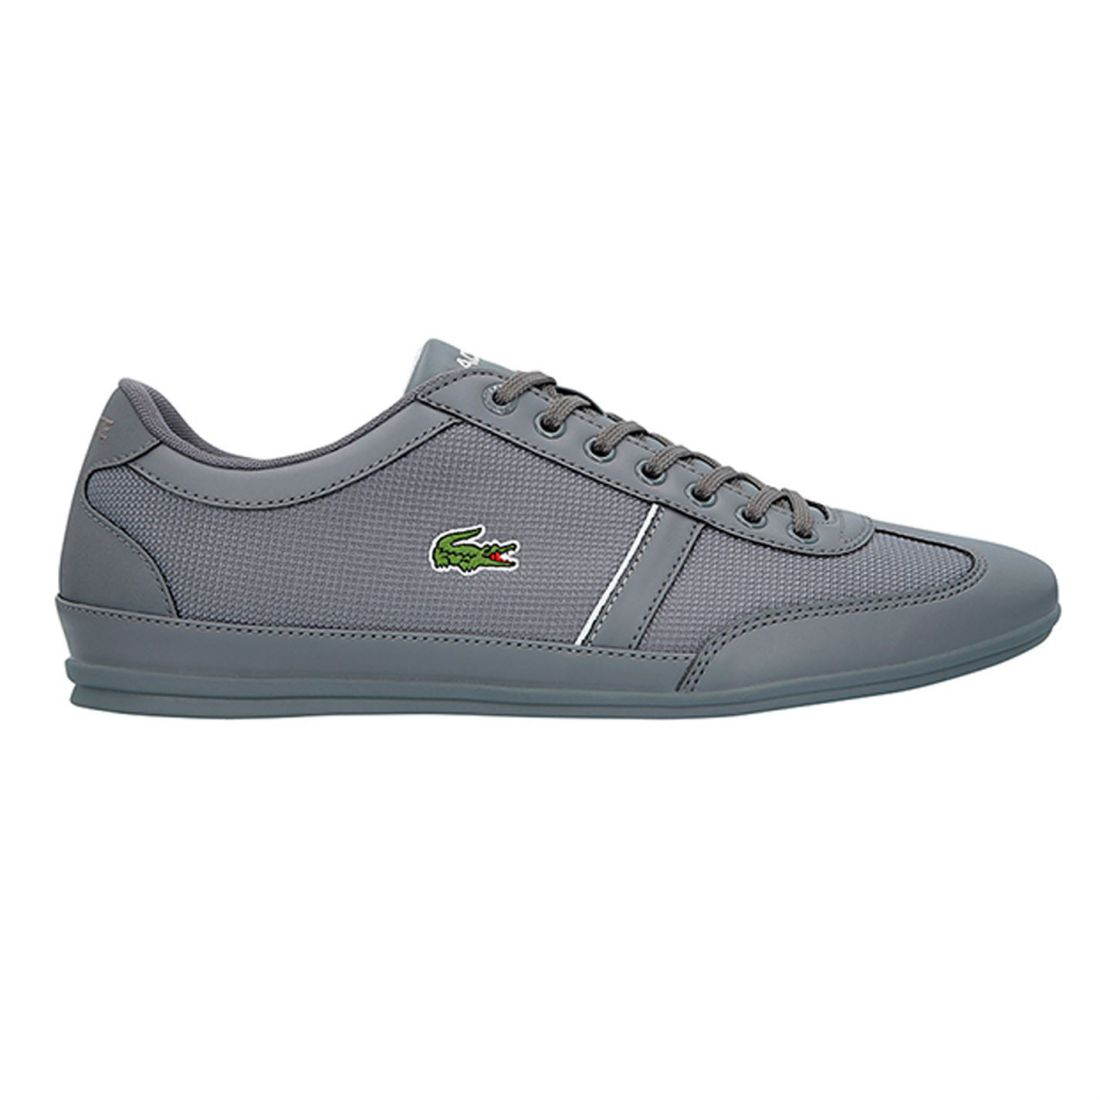 1ab8579612c15 Image is loading Mens-Lacoste-Misano-Trainers-Low-Lace-Up-Tonal-